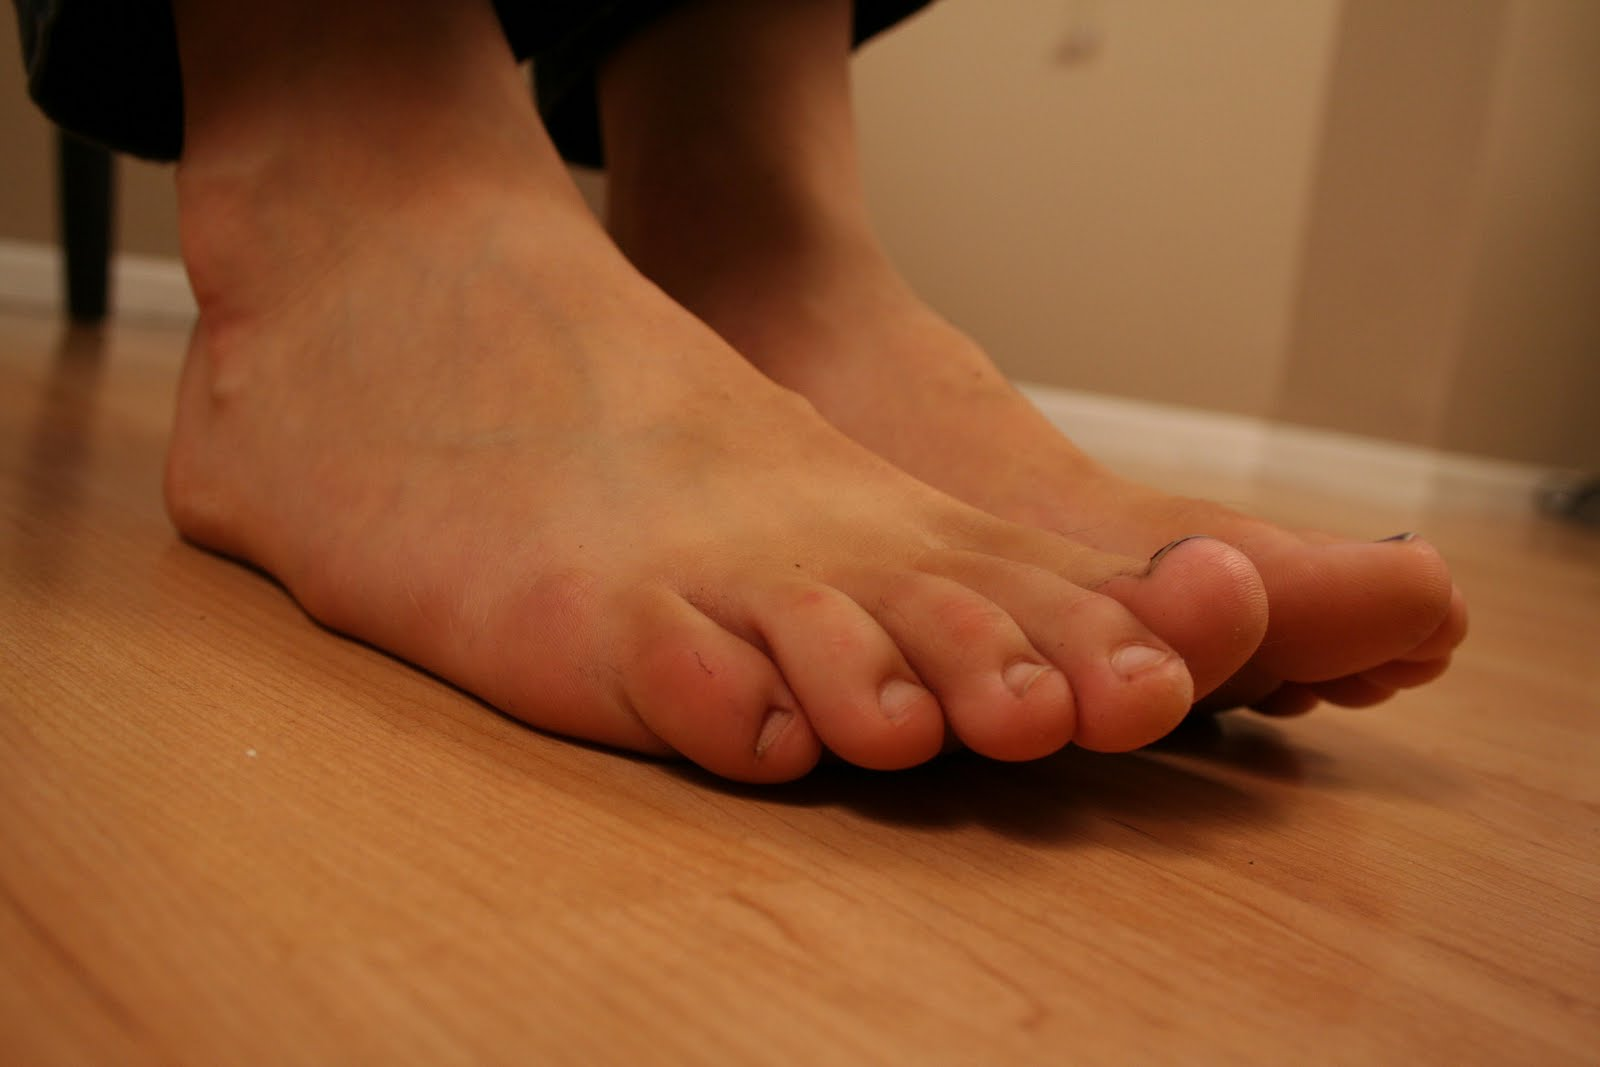 ... barefoot photoset from a sexy barefoot girl check out these previews